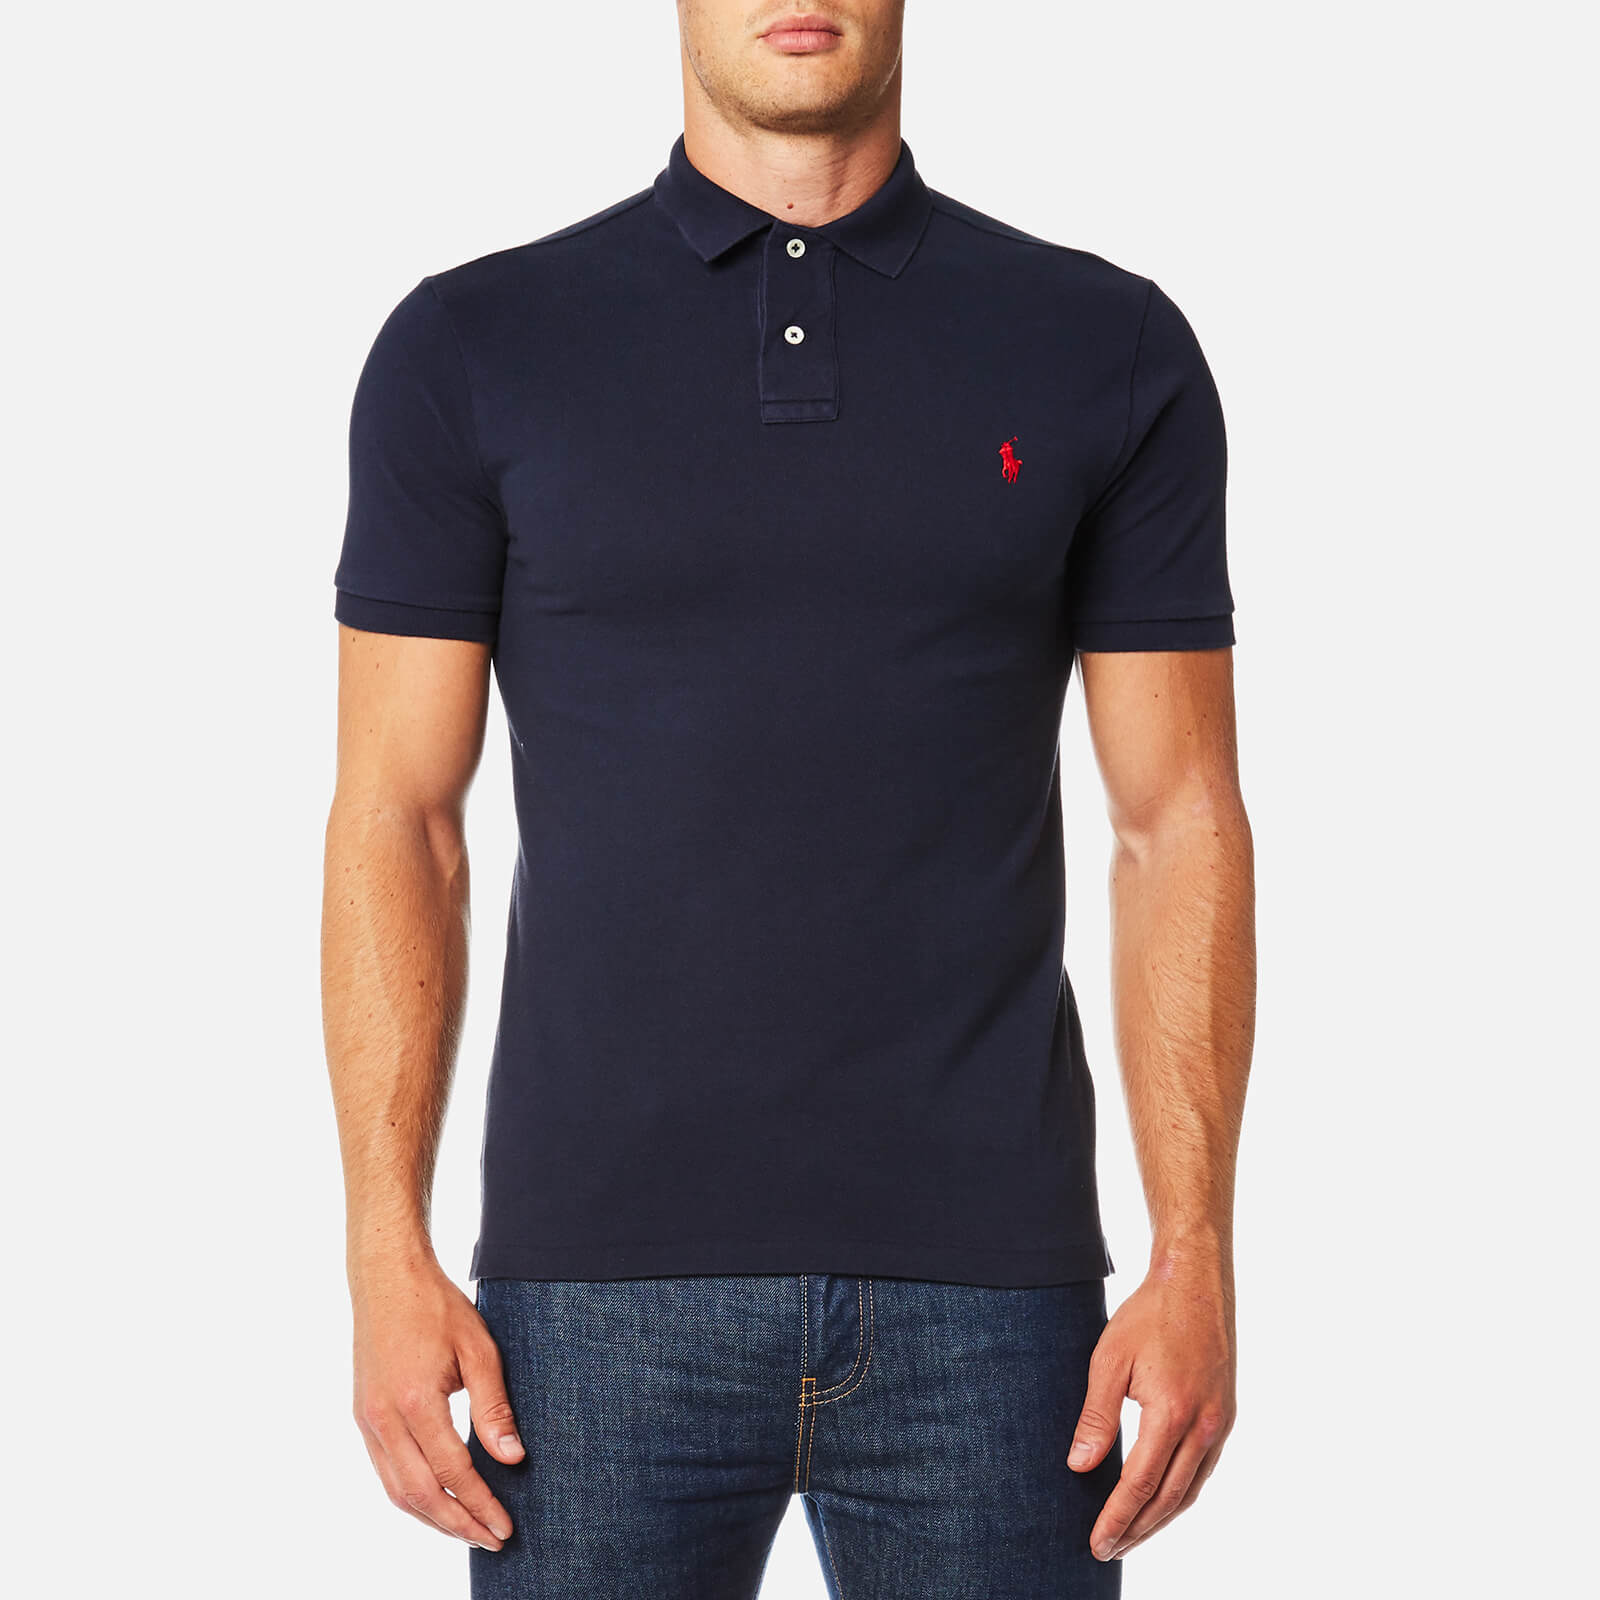 12ffe4bd1 Polo Ralph Lauren Men's Slim Fit Mesh Polo Shirt - Navy - Free UK Delivery  over £50